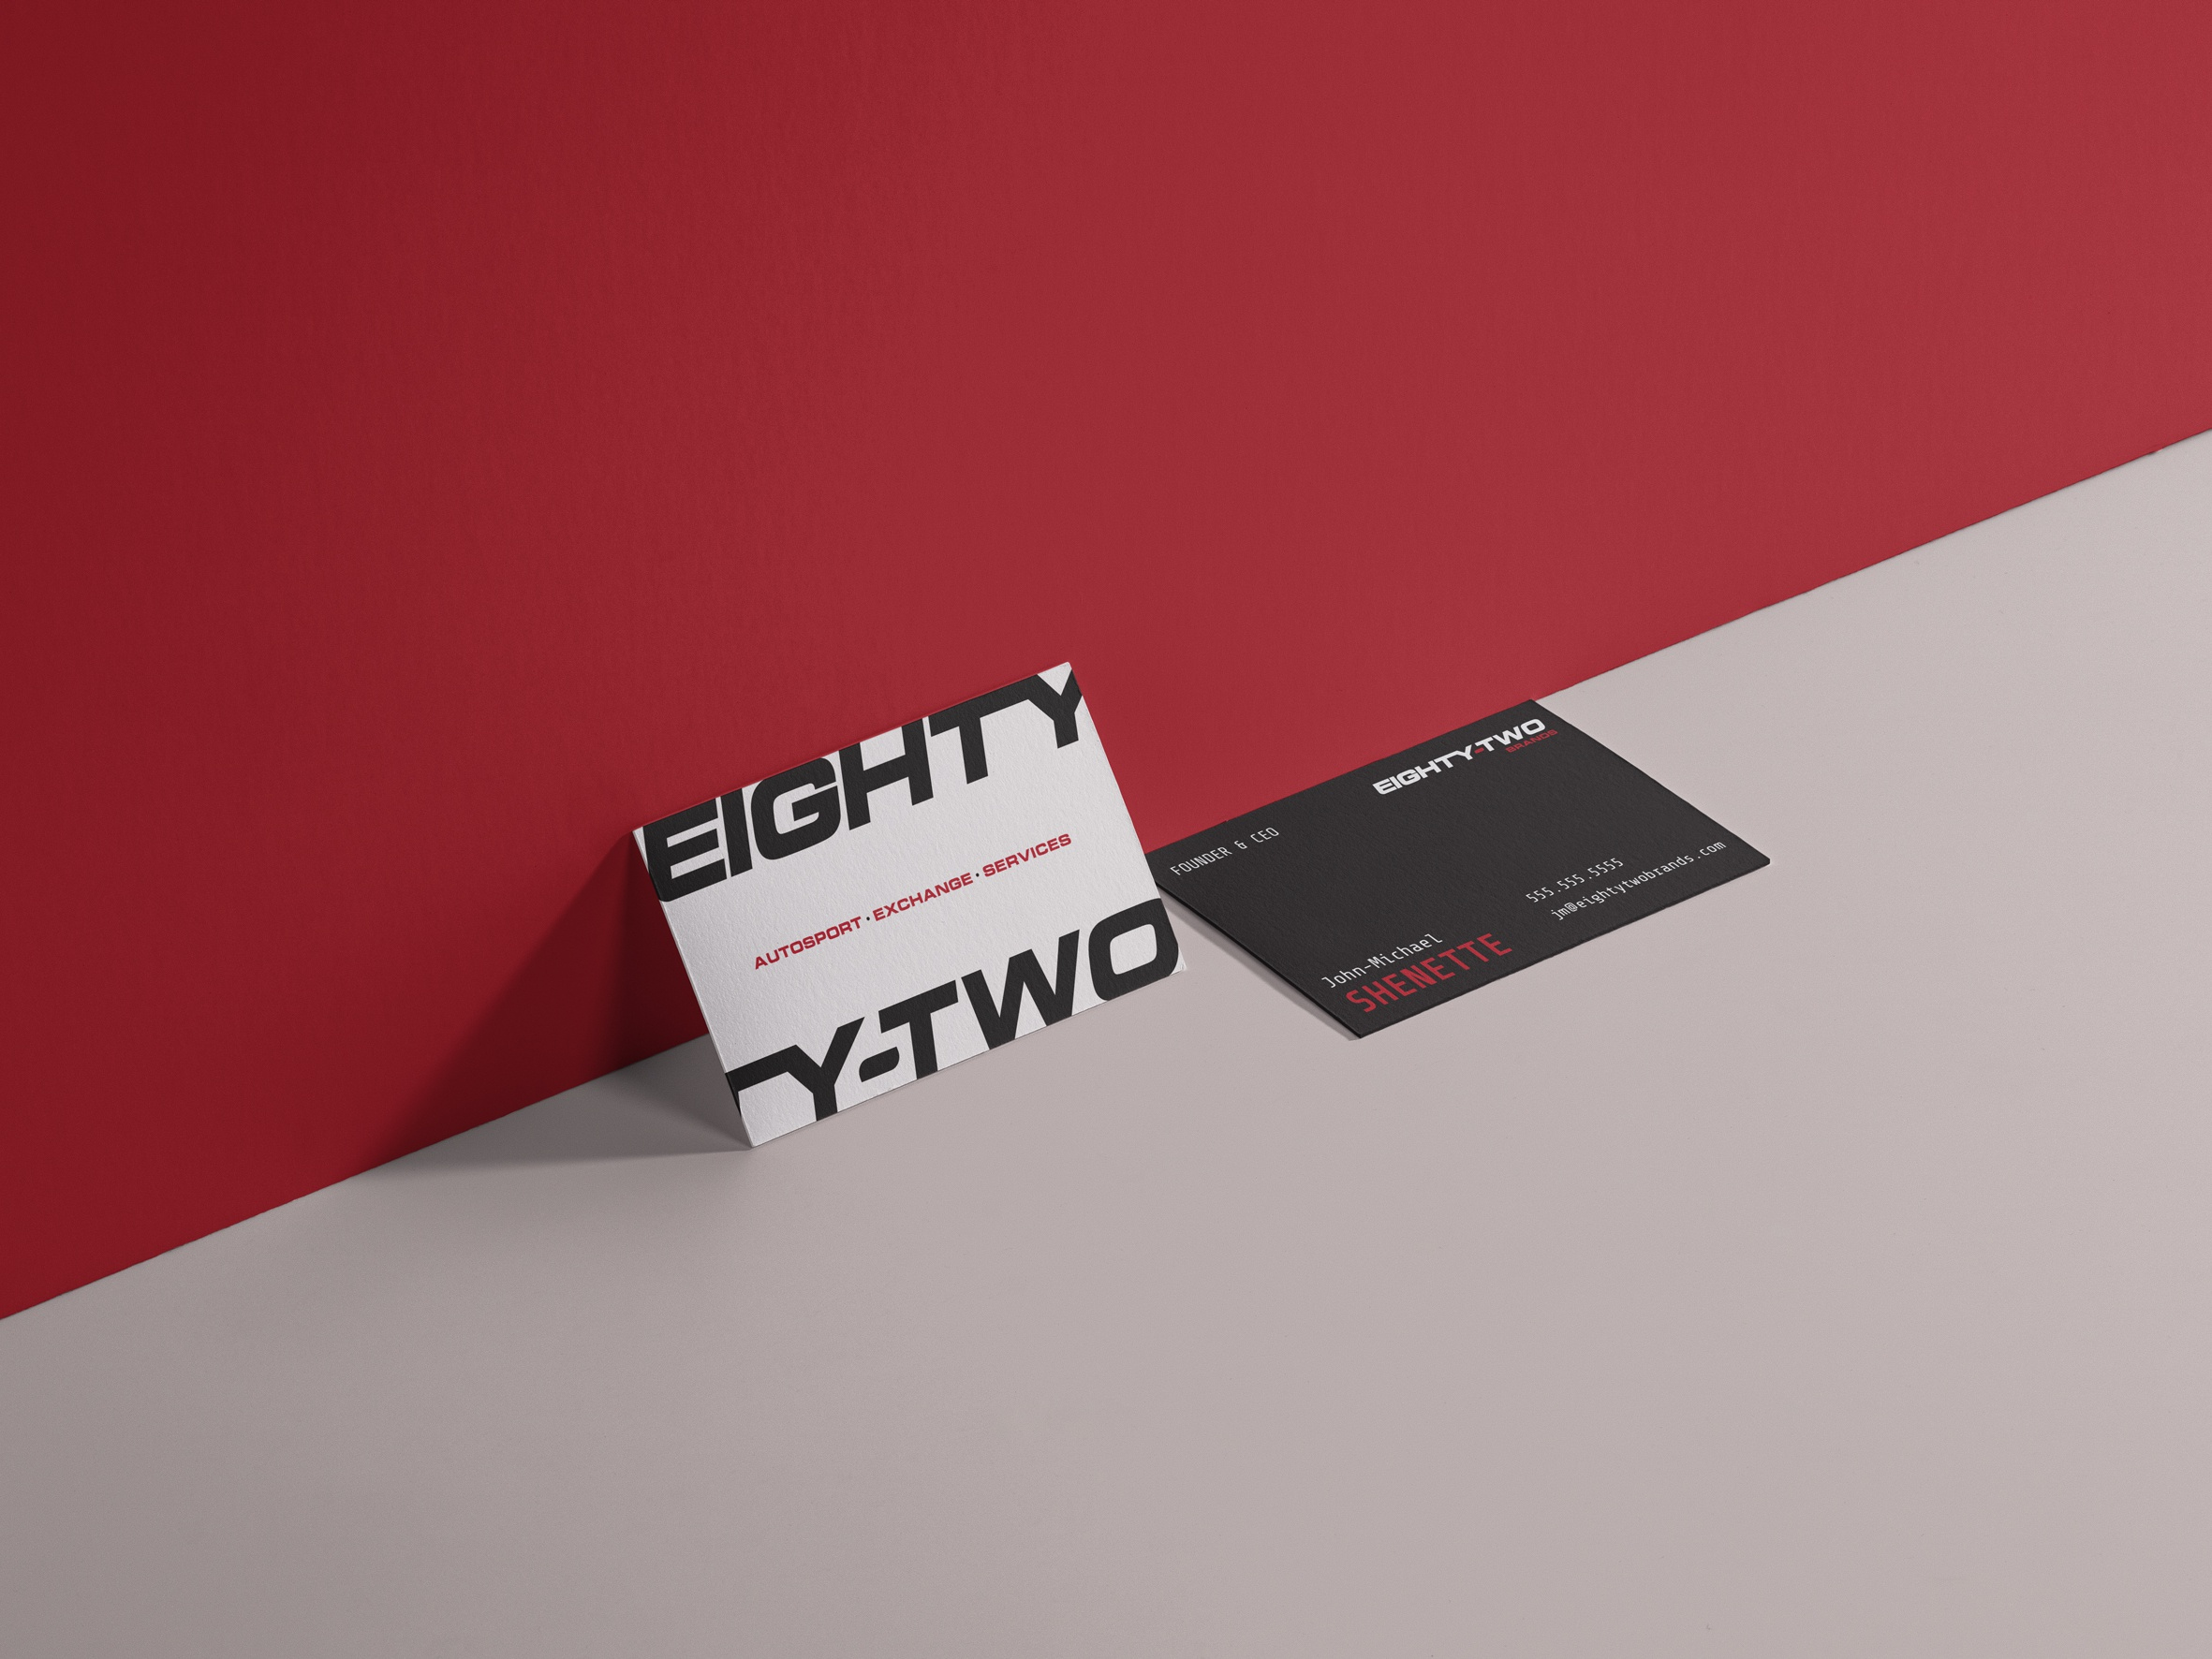 Eighty two bs card mockup dribbble